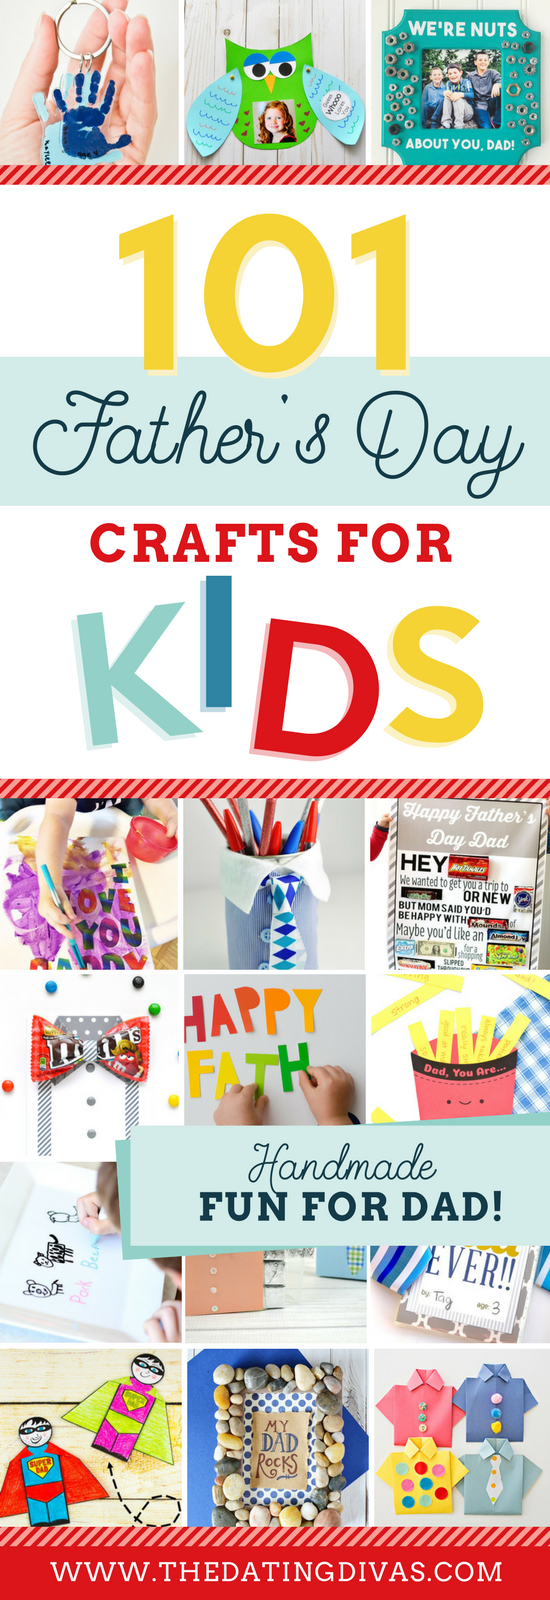 Father S Day Crafts For Kids From The Dating Divas